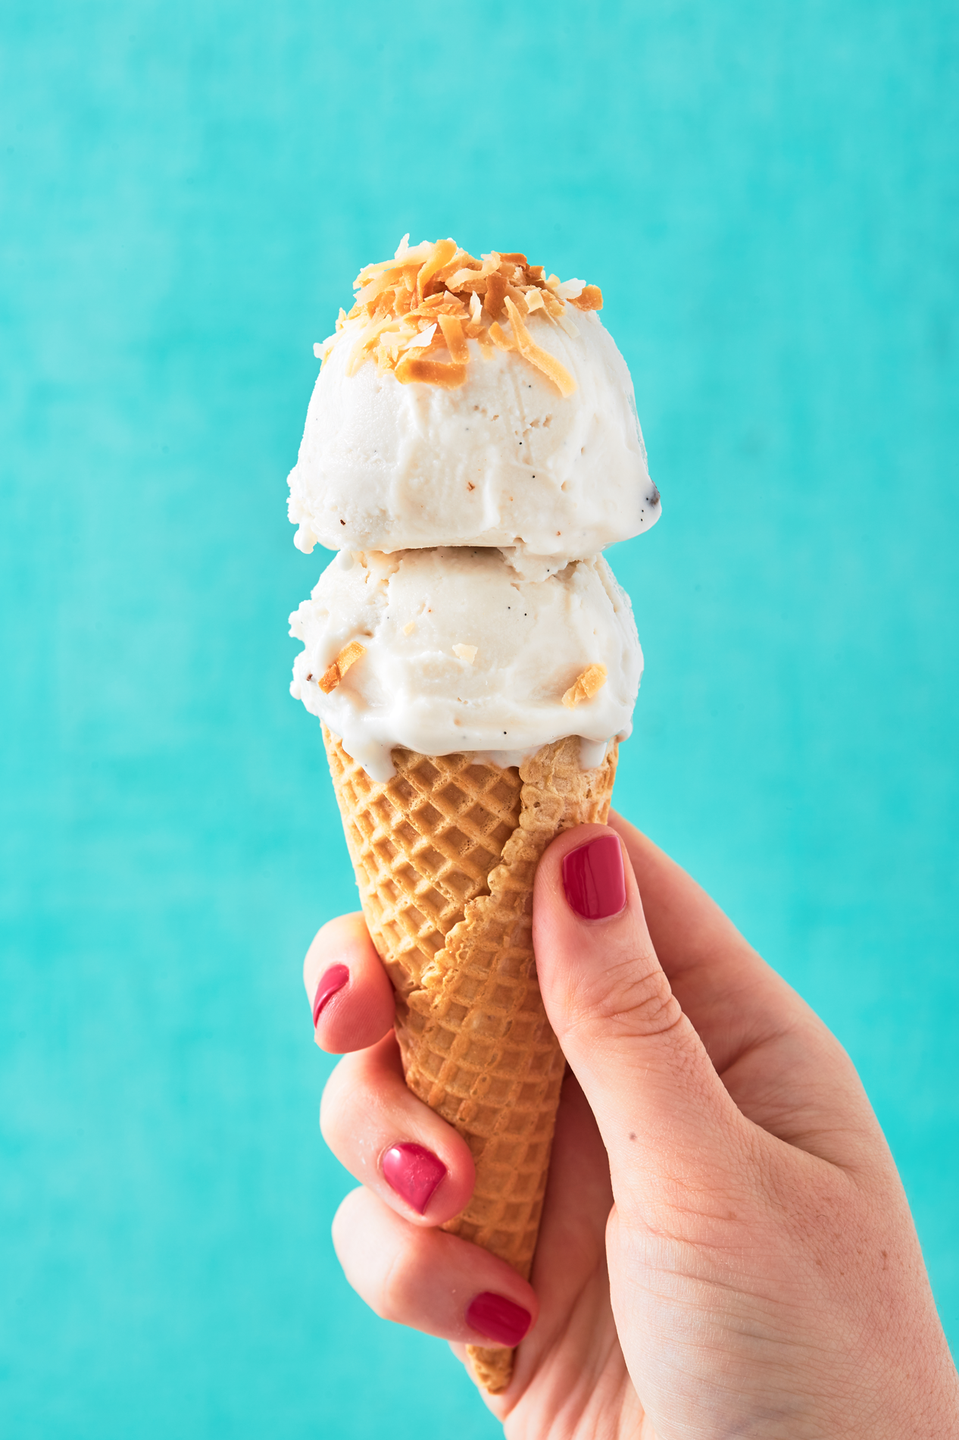 """<p>It's dairy free AND vegan!<br></p><p>Get the recipe from <a href=""""https://www.delish.com/cooking/recipe-ideas/a27971982/coconut-ice-cream-recipe/"""" rel=""""nofollow noopener"""" target=""""_blank"""" data-ylk=""""slk:Delish"""" class=""""link rapid-noclick-resp"""">Delish</a>. </p>"""